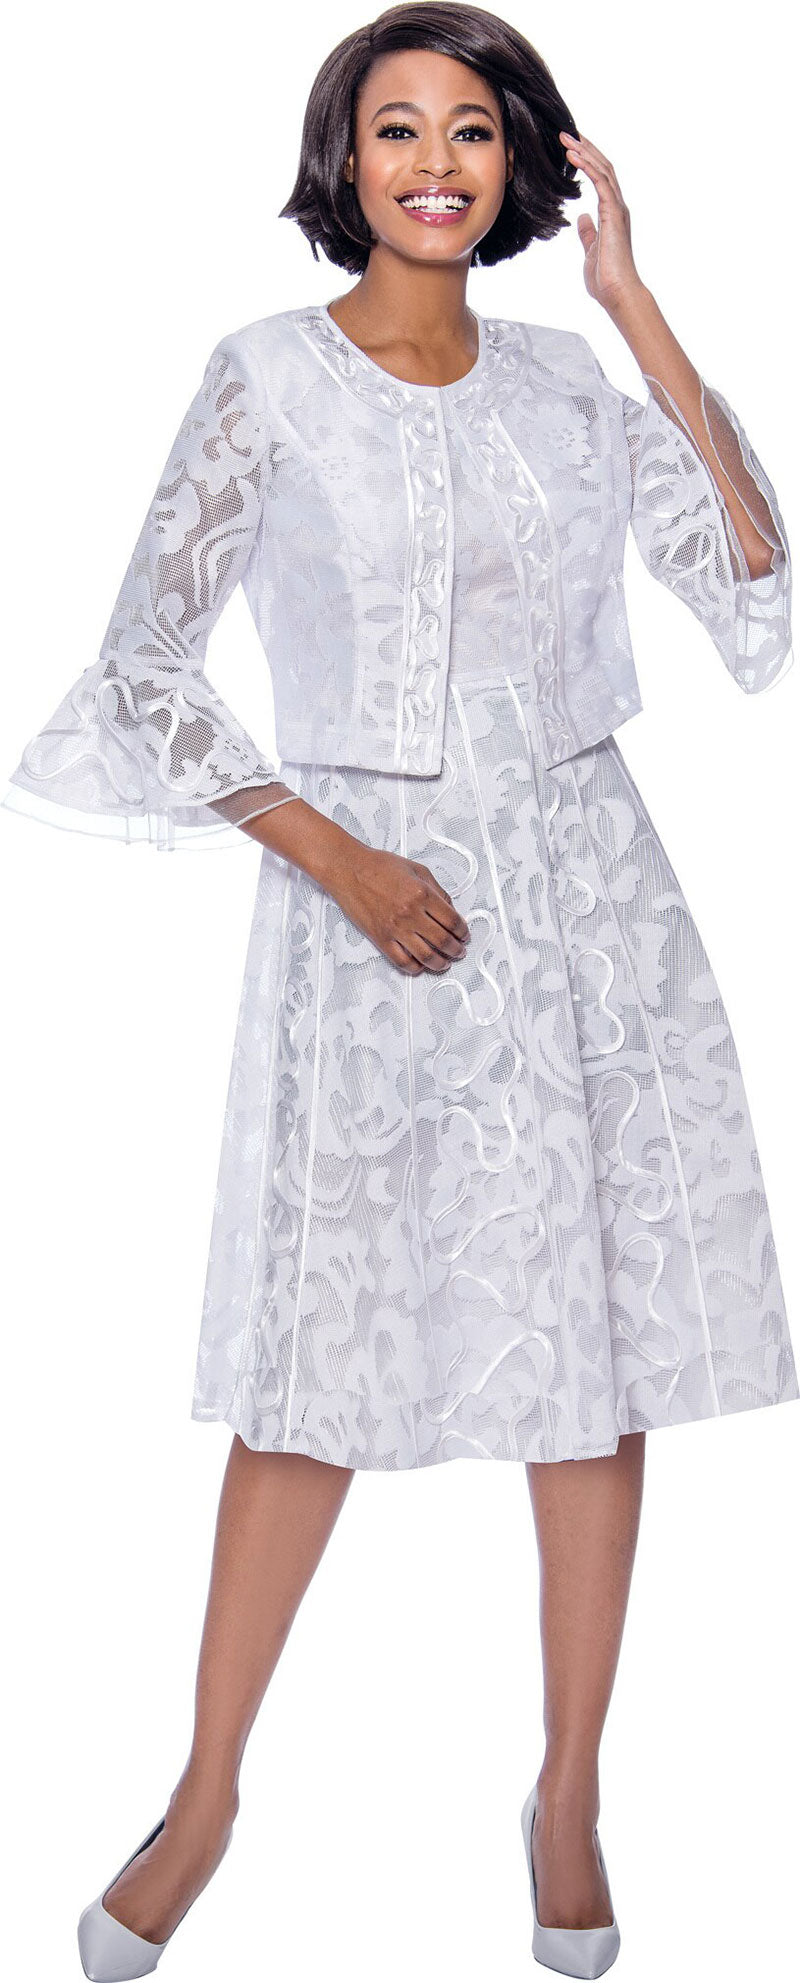 Terramina Dress 7826-White - Church Suits For Less